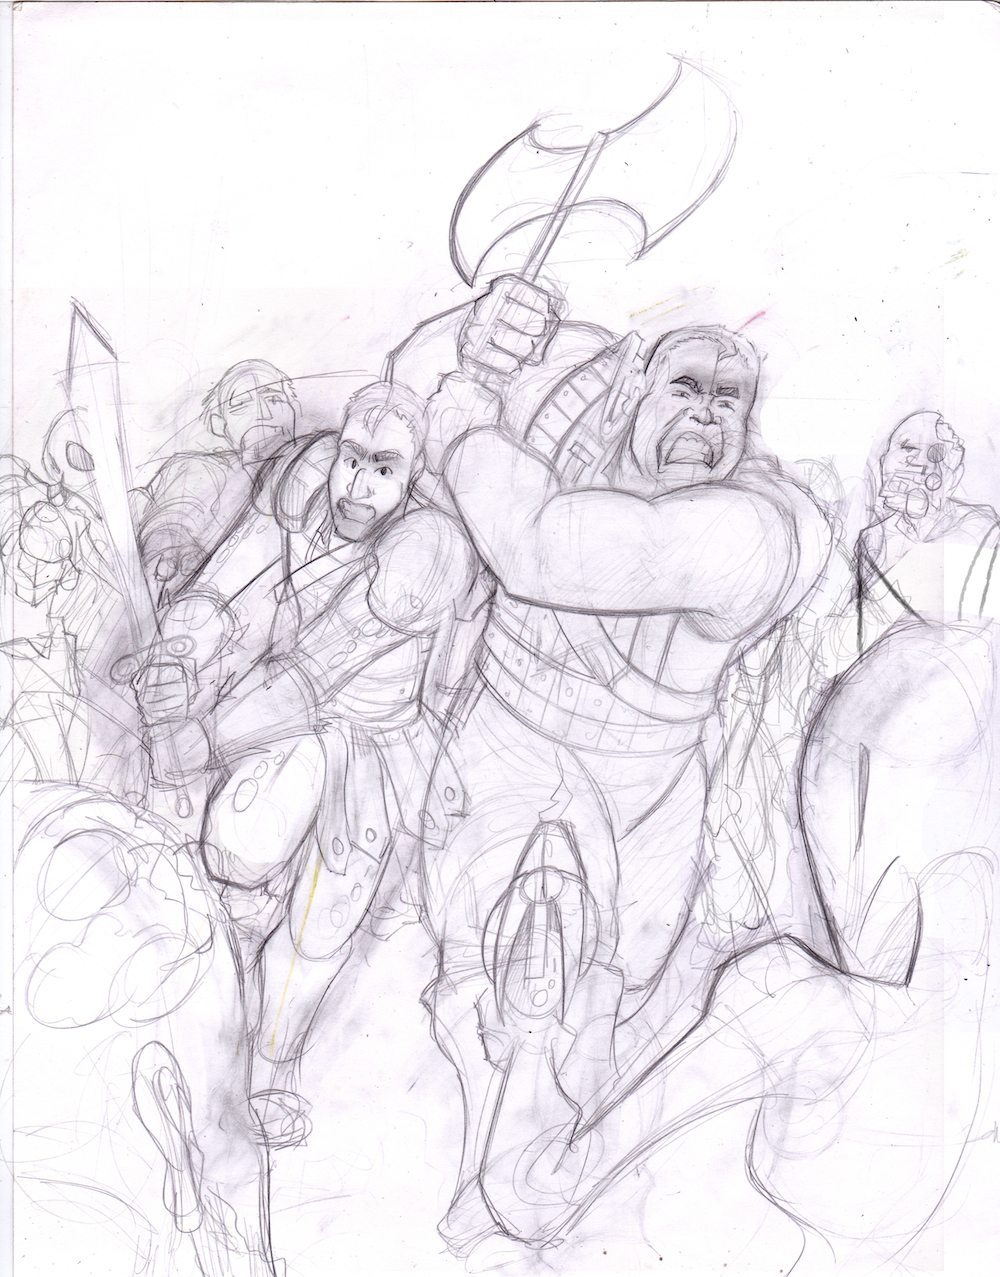 WIP Sketch of Brothers vs Zombies and Aliens by Silvadoray